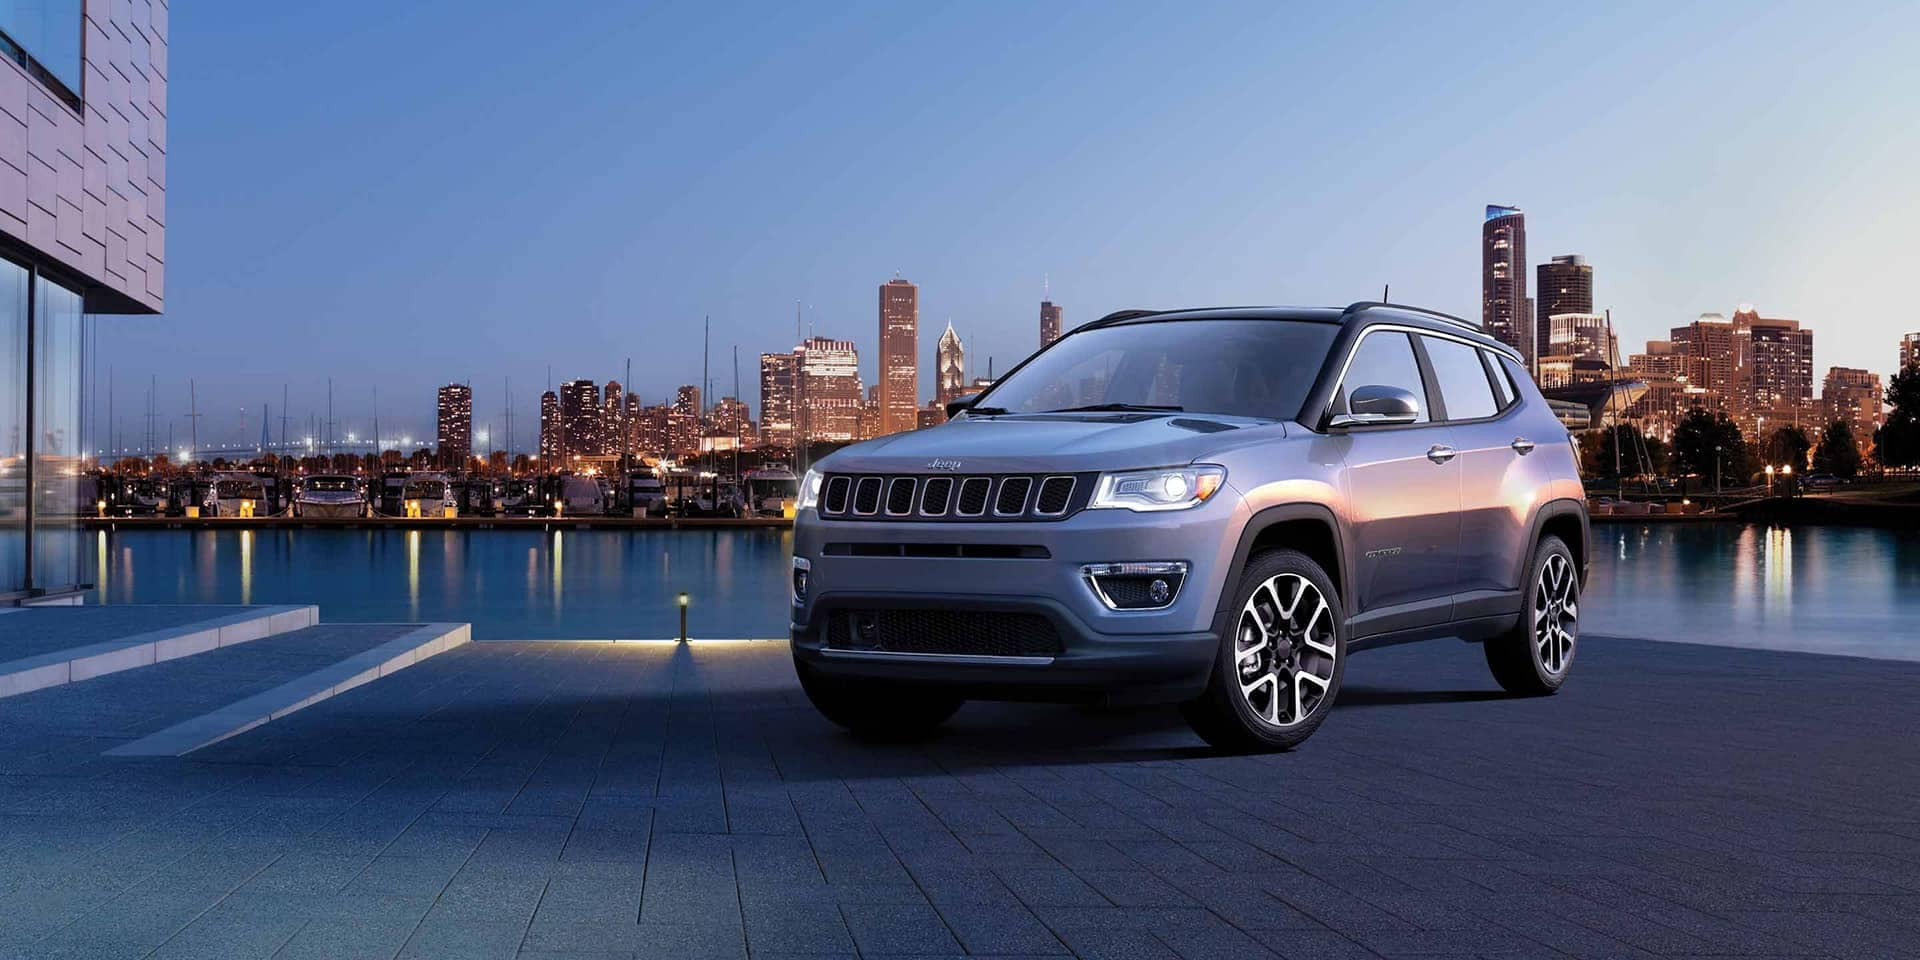 2019 Jeep Compass Gallery Exterior Laltitude Grey Front Skyline